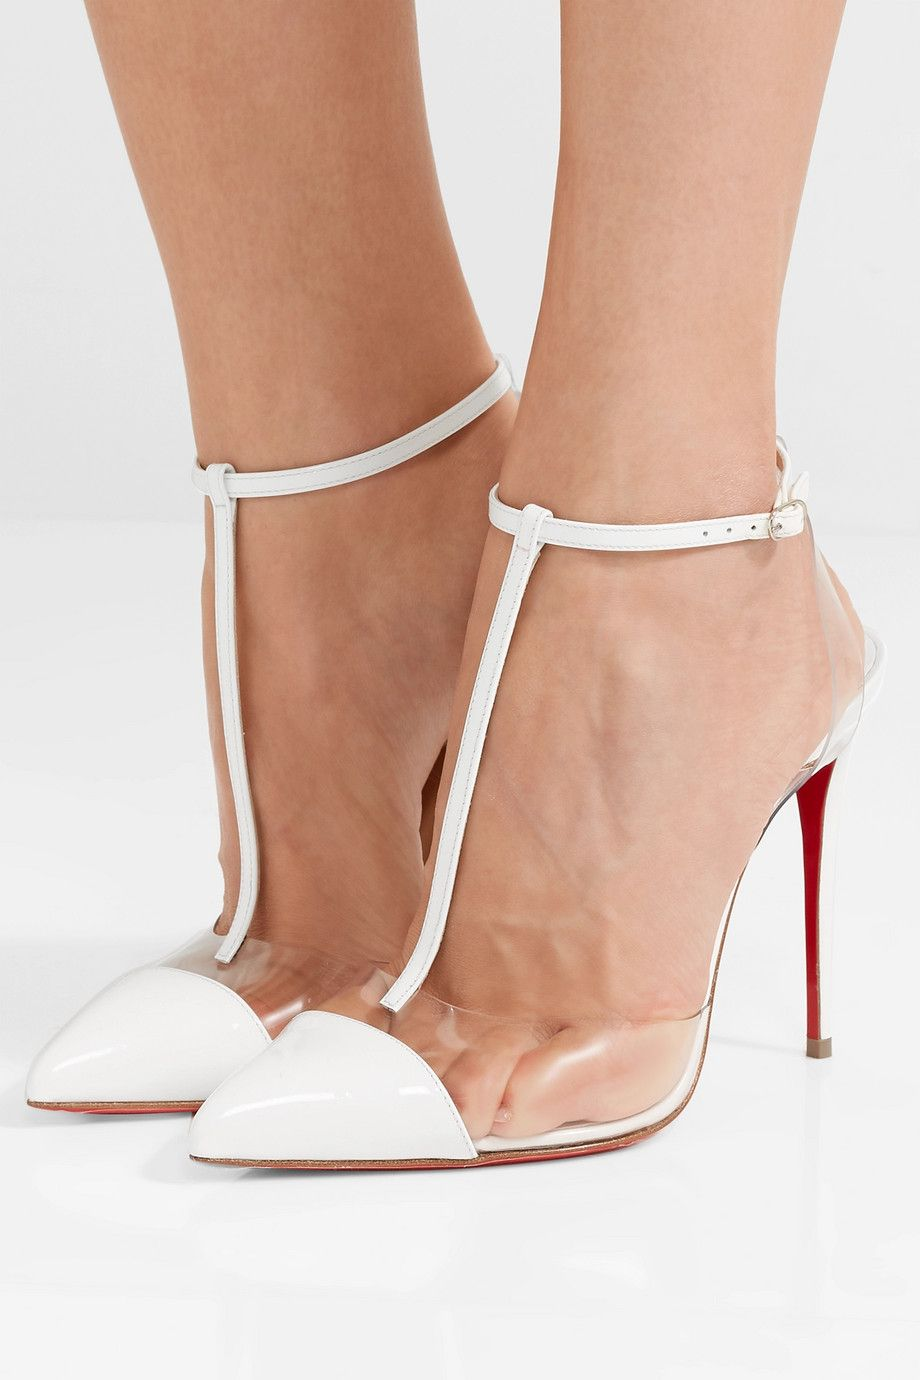 daa76df4e9 Christian Louboutin - Nosy 100 patent-leather and PVC T-bar pumps ...